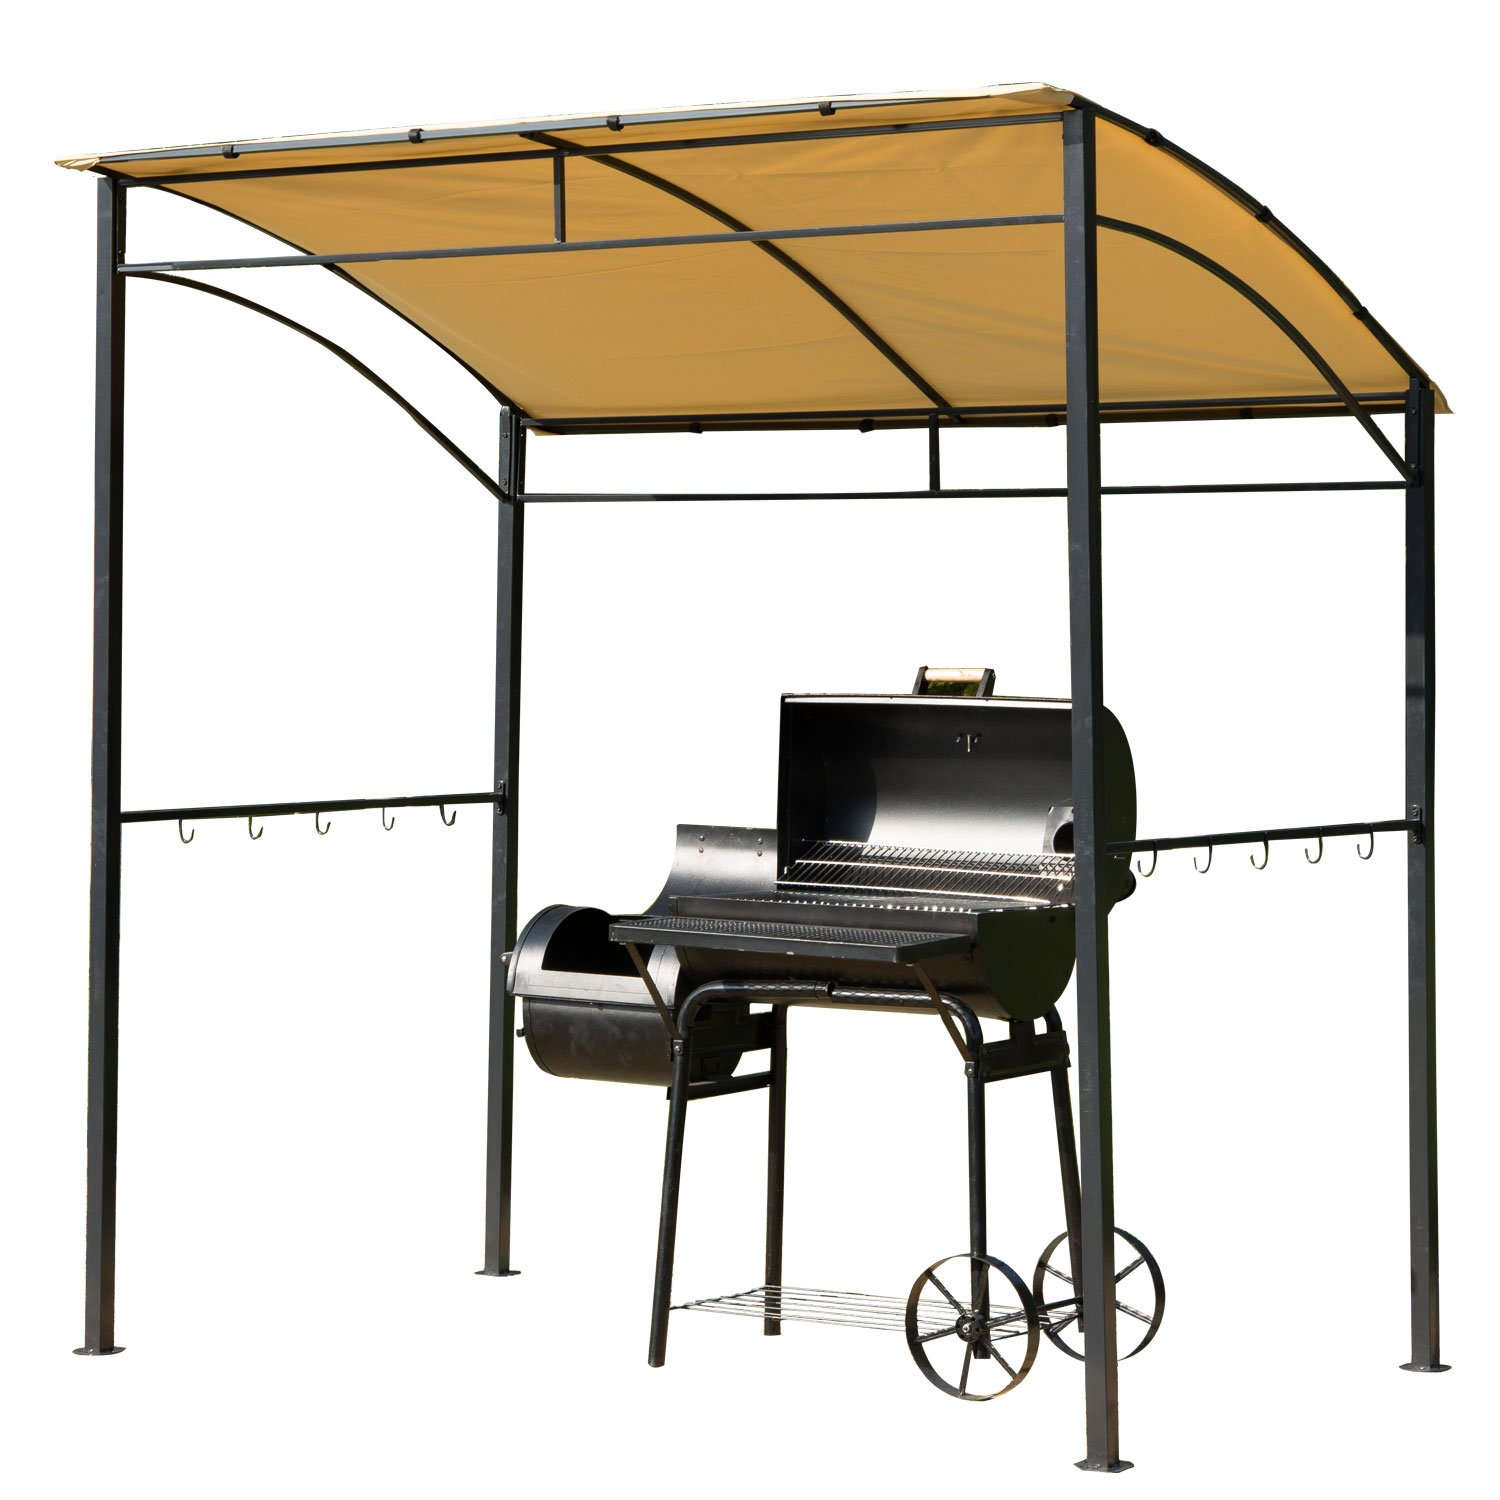 outdoors barbecue co bbq dp tepro amazon awning garden shelter steel frame gazebo uk party